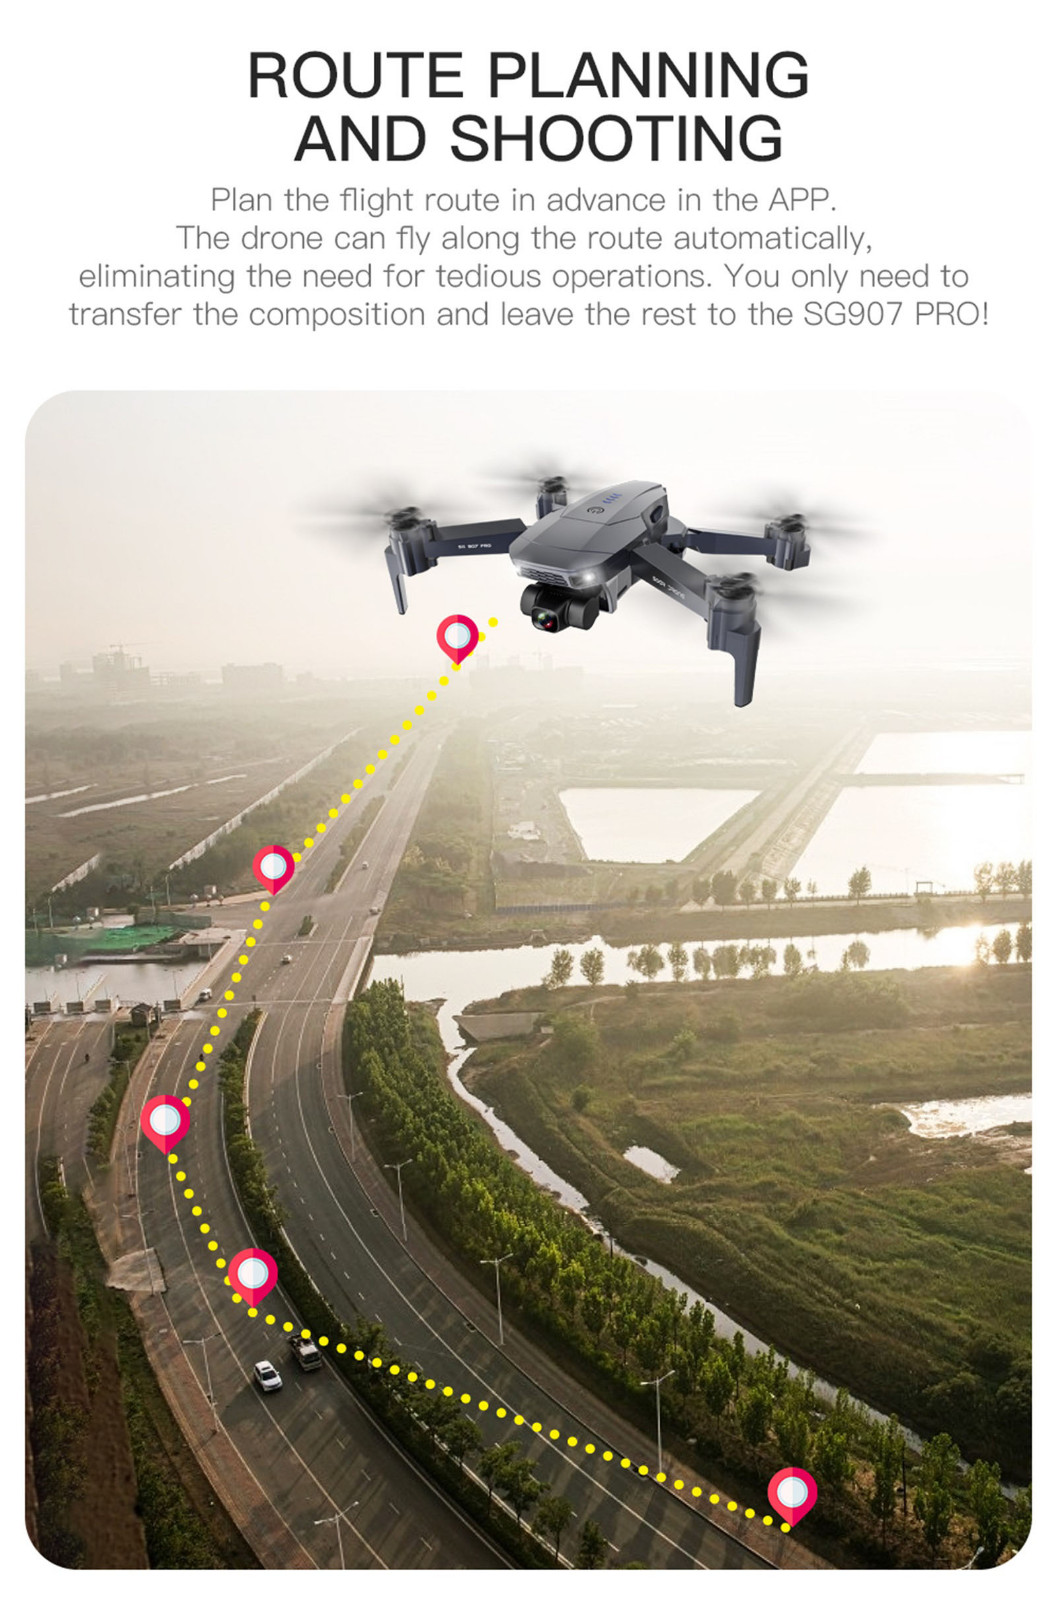 H274cb2a898384b7aa8d642825a956090I - 2020 New Sg907 Pro 5g Wifi Drone 2-axis Gimbal 4k Camera Wifi Gps Rc Drone Toy Rc Four-axis Professional Folding Camera Drones